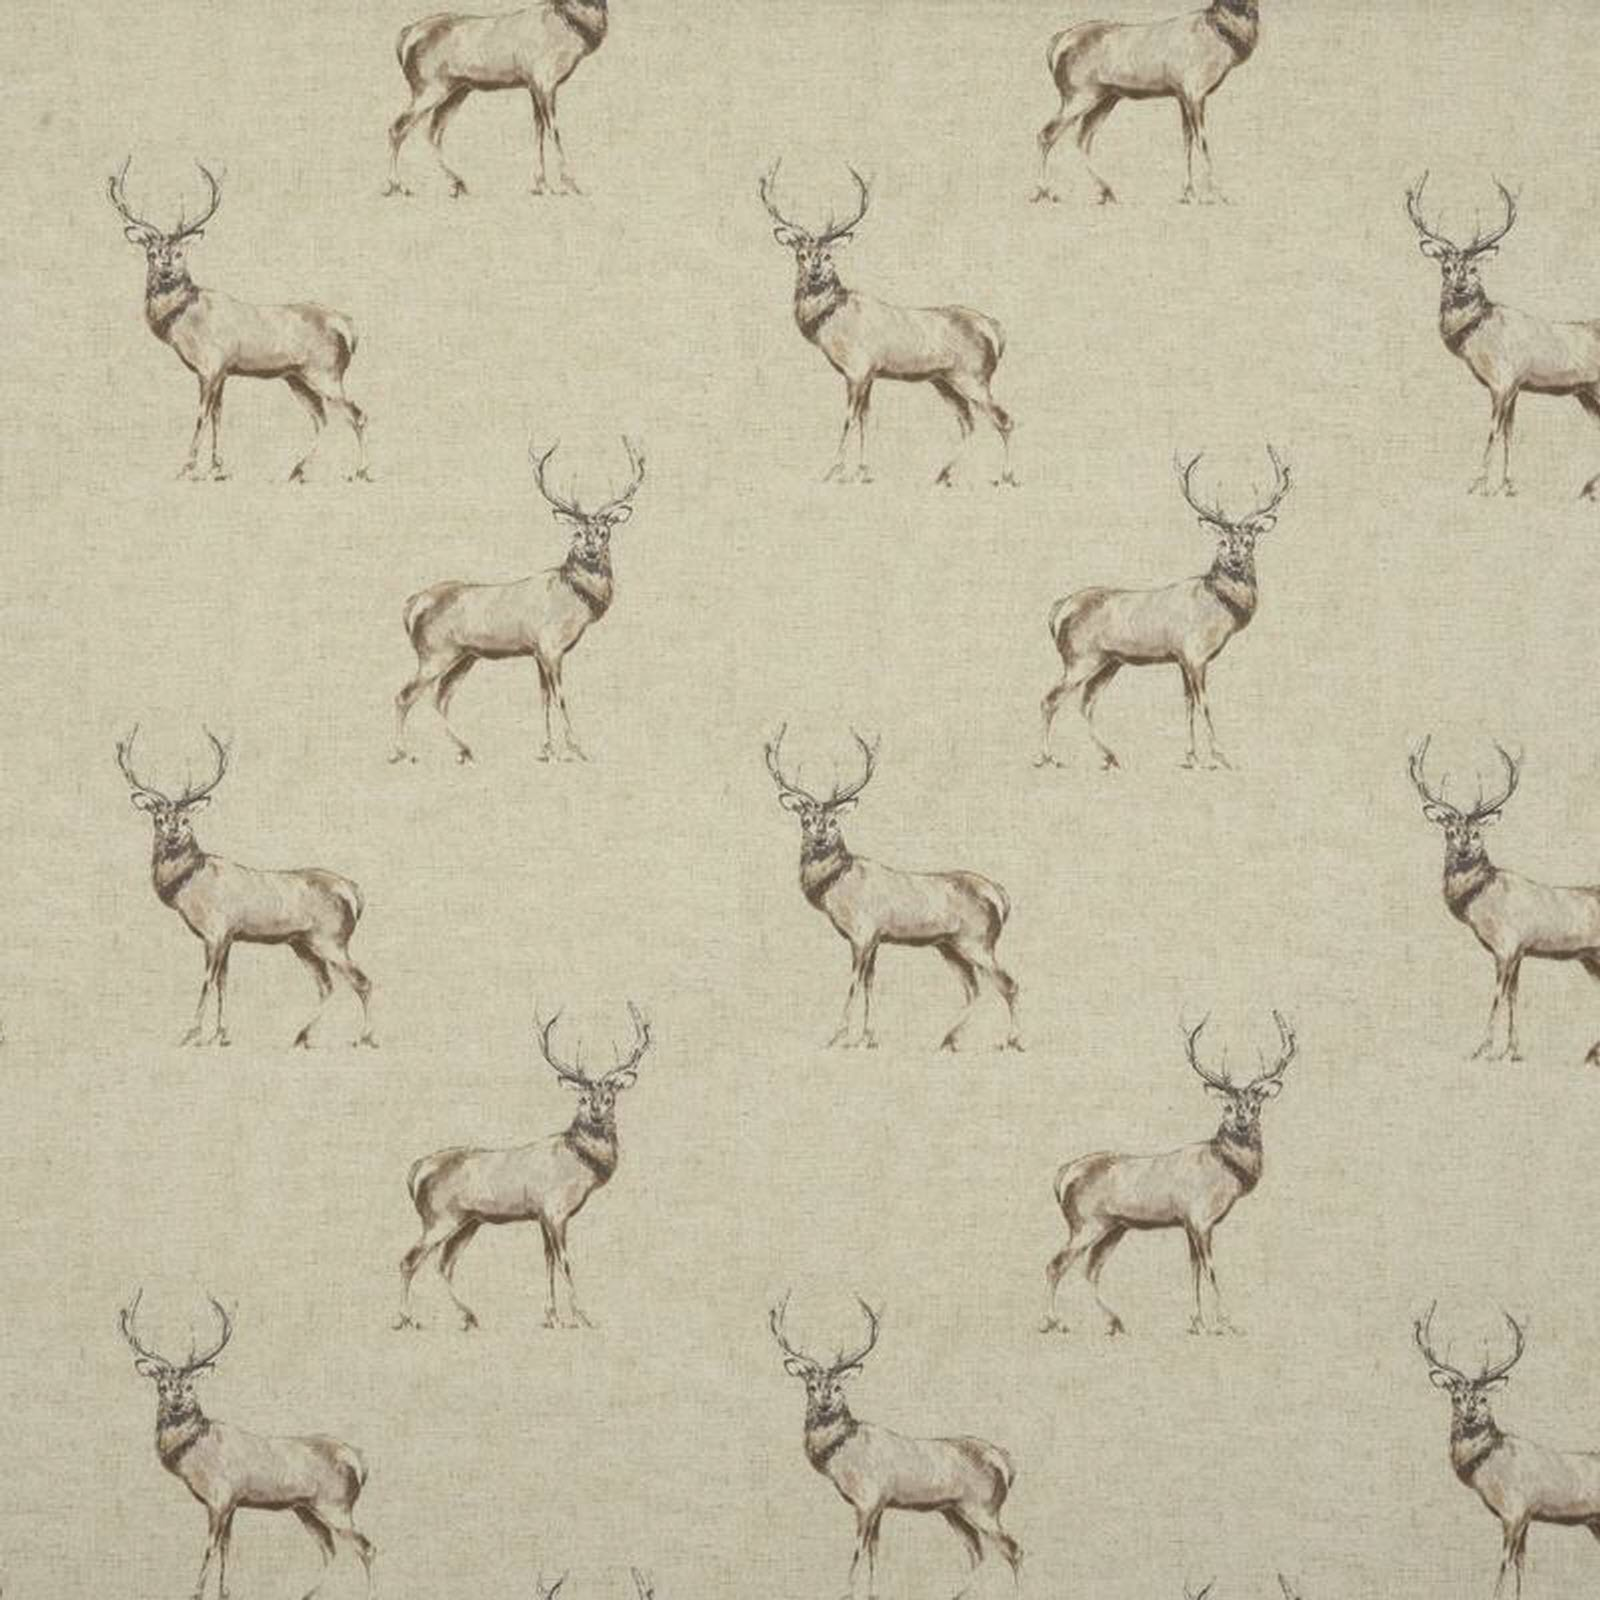 Stag (Matt) Oilcloth by the metre